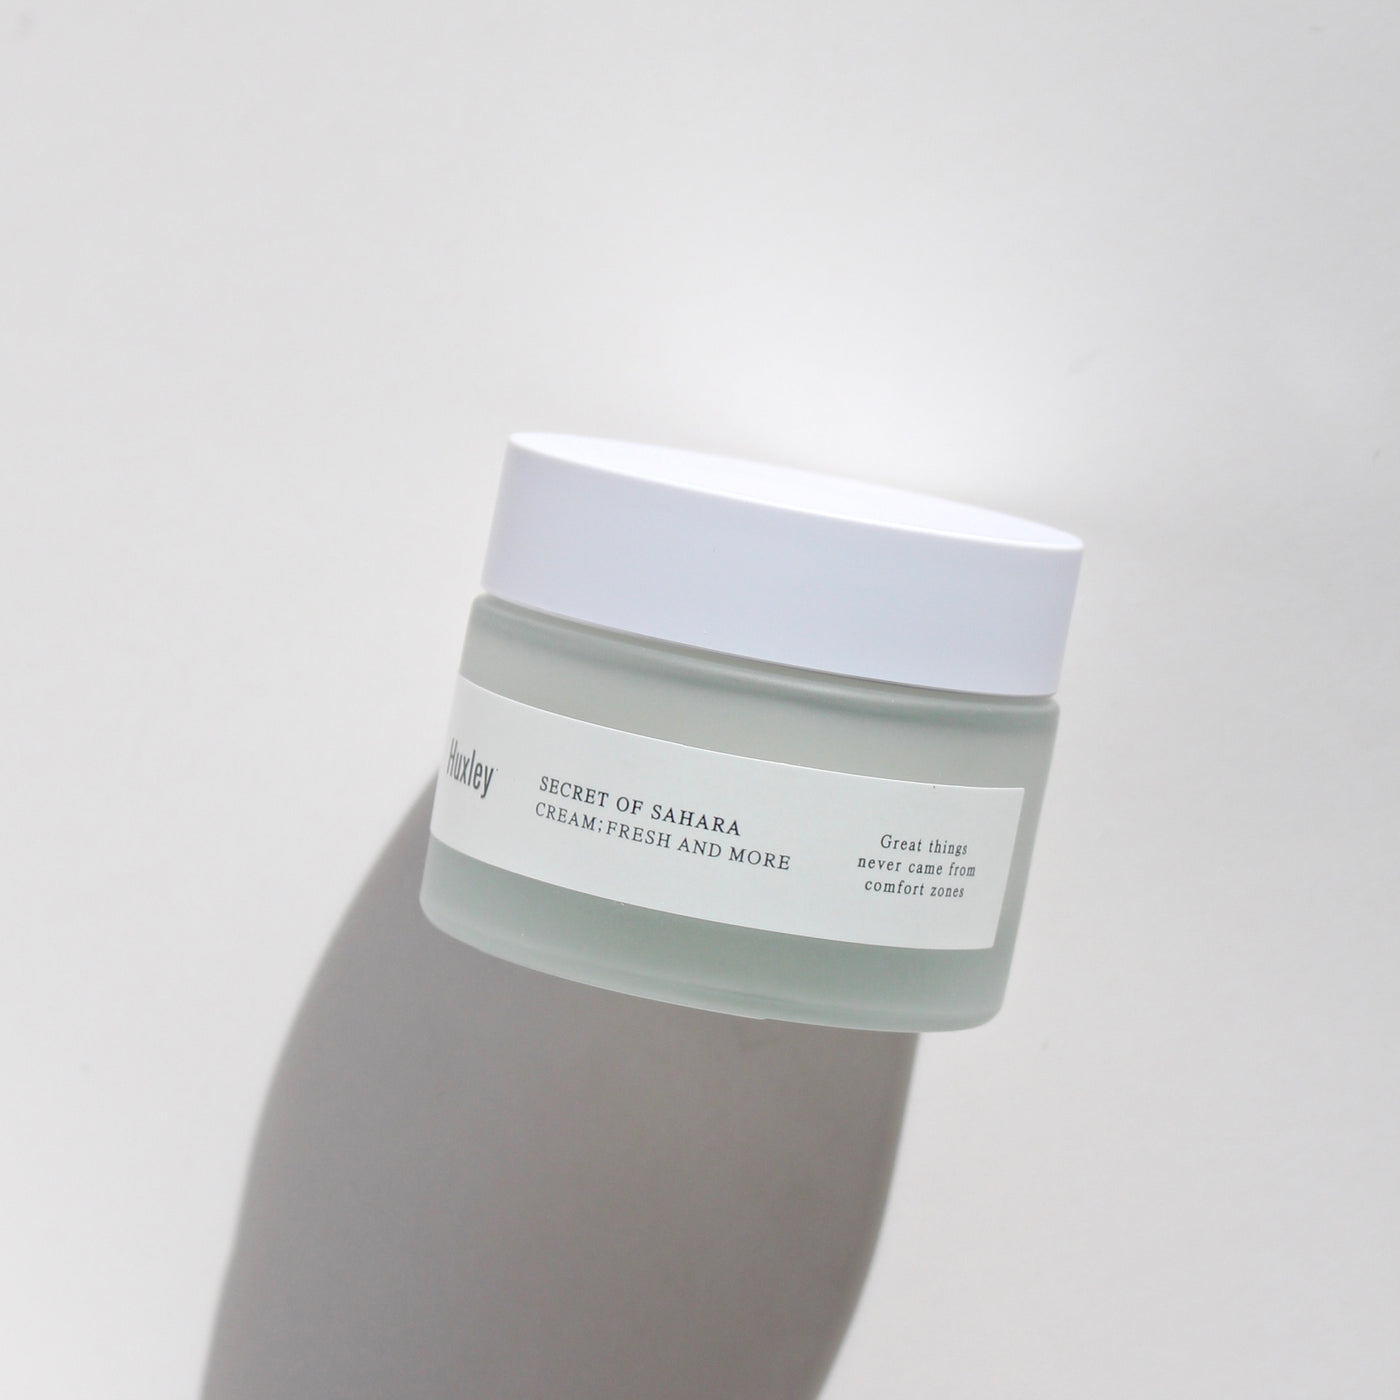 Huxley | Secret of Sahara Cream: Fresh and More Moisturizer